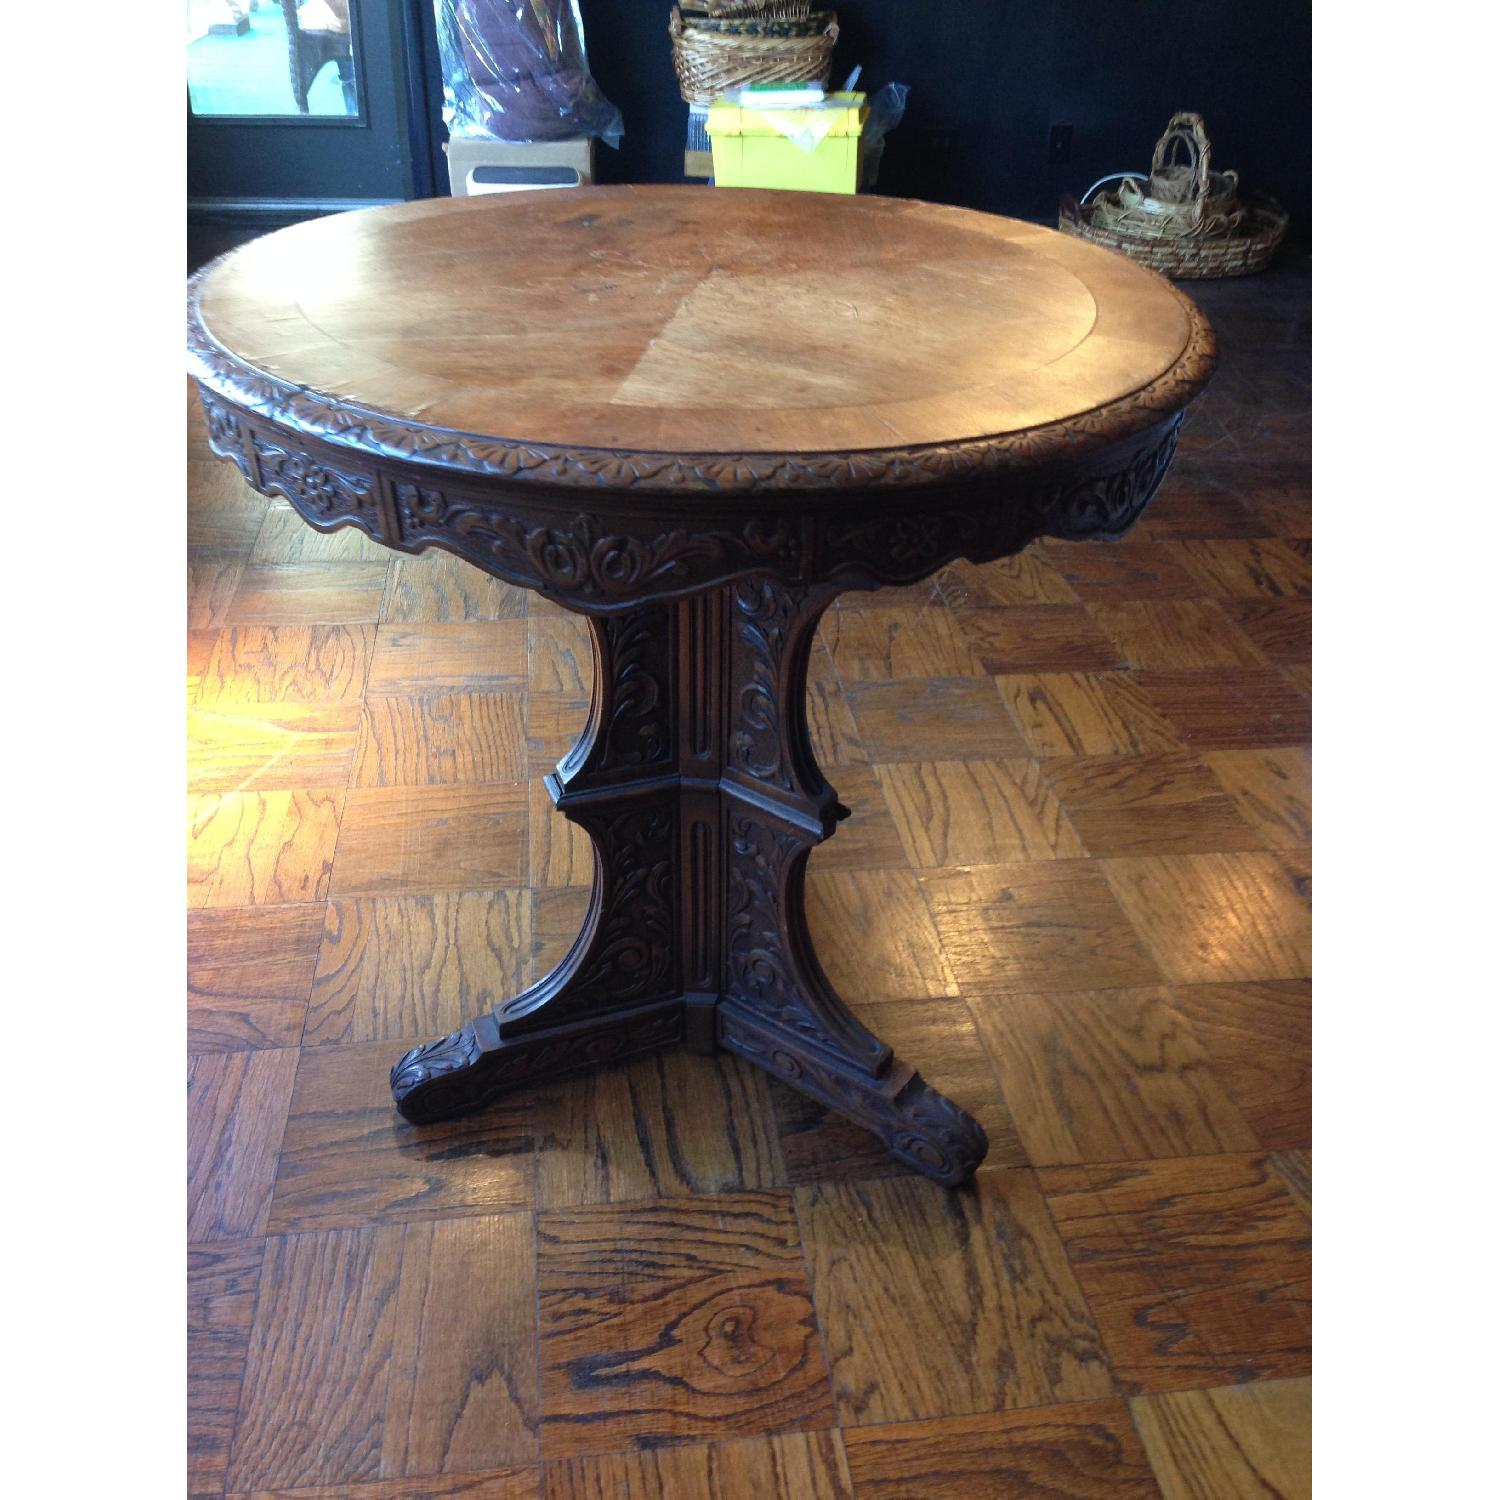 Italian Vintage Carved Wood Baroque Style Round Side Table - image-13